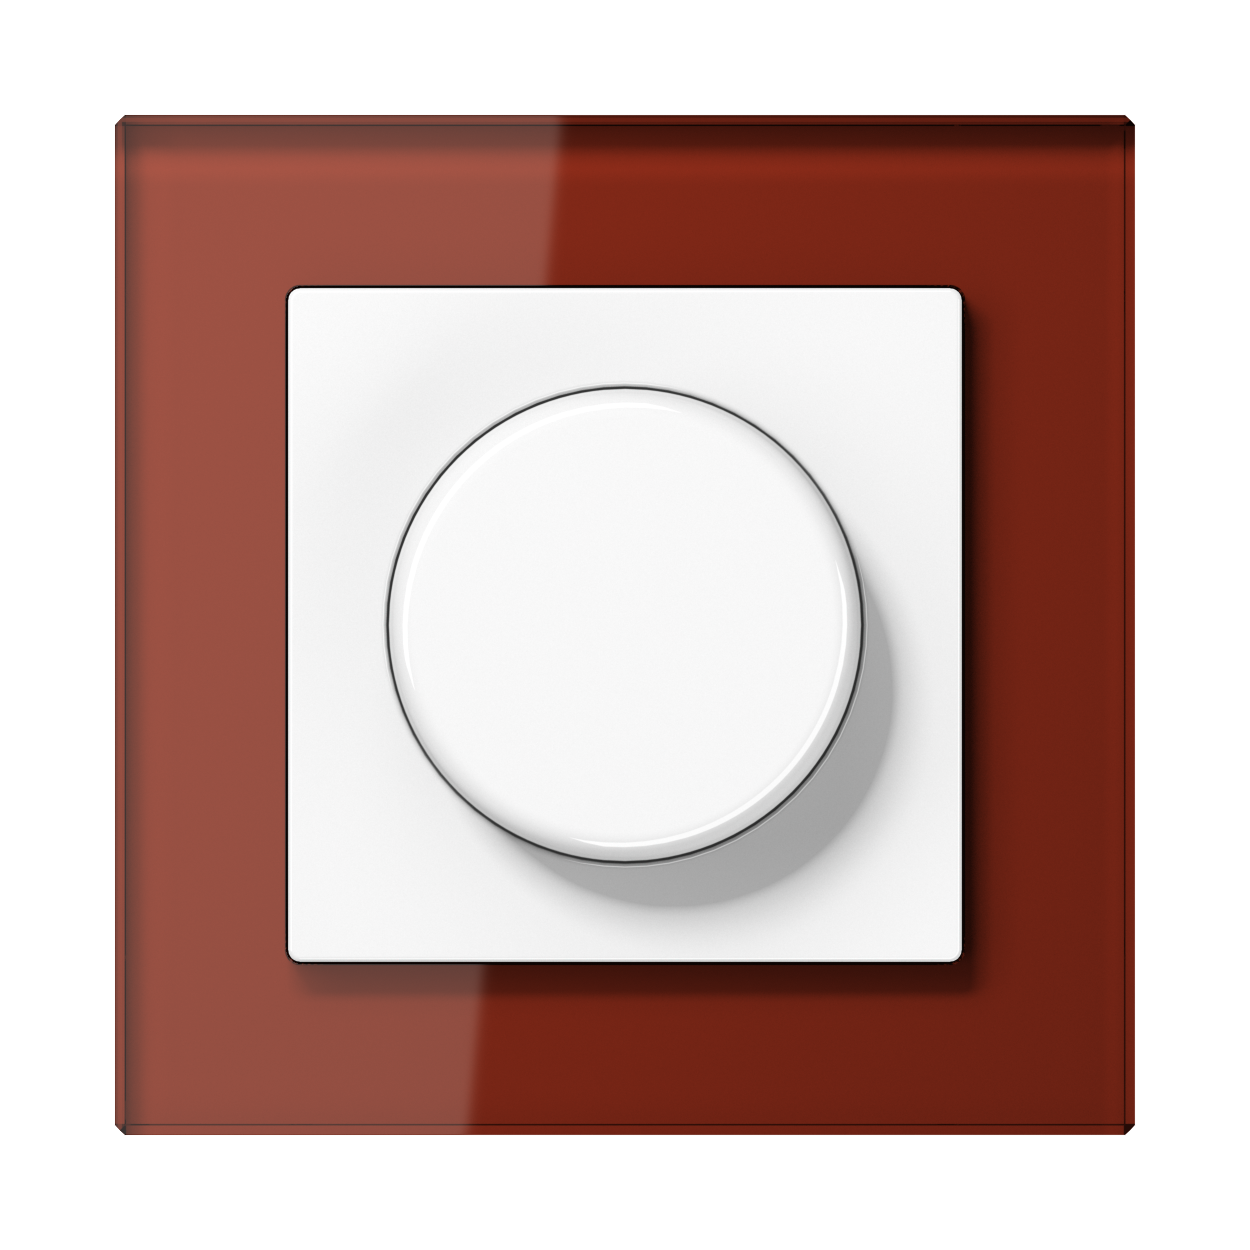 JUNG_AC_GL_red_dimmer